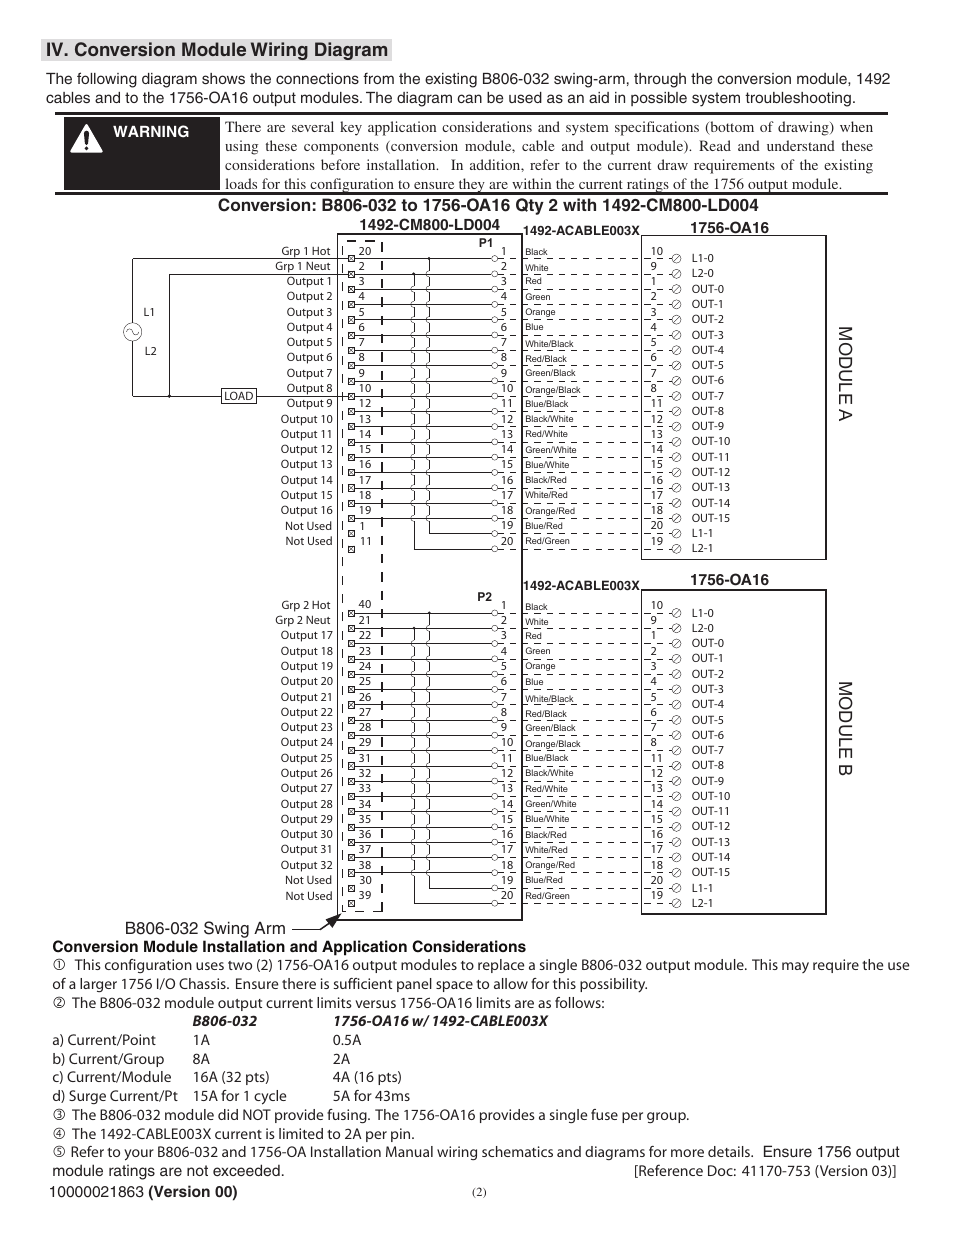 rockwell automation 1492 cm800 ld004 field wire conv module for modicon b806 032 to 1756 oa16 page2?resize\\\=665%2C861 hyosung gt250r wiring diagram beta wiring diagram, tomos wiring wiring diagram for tomos targa lx at nearapp.co